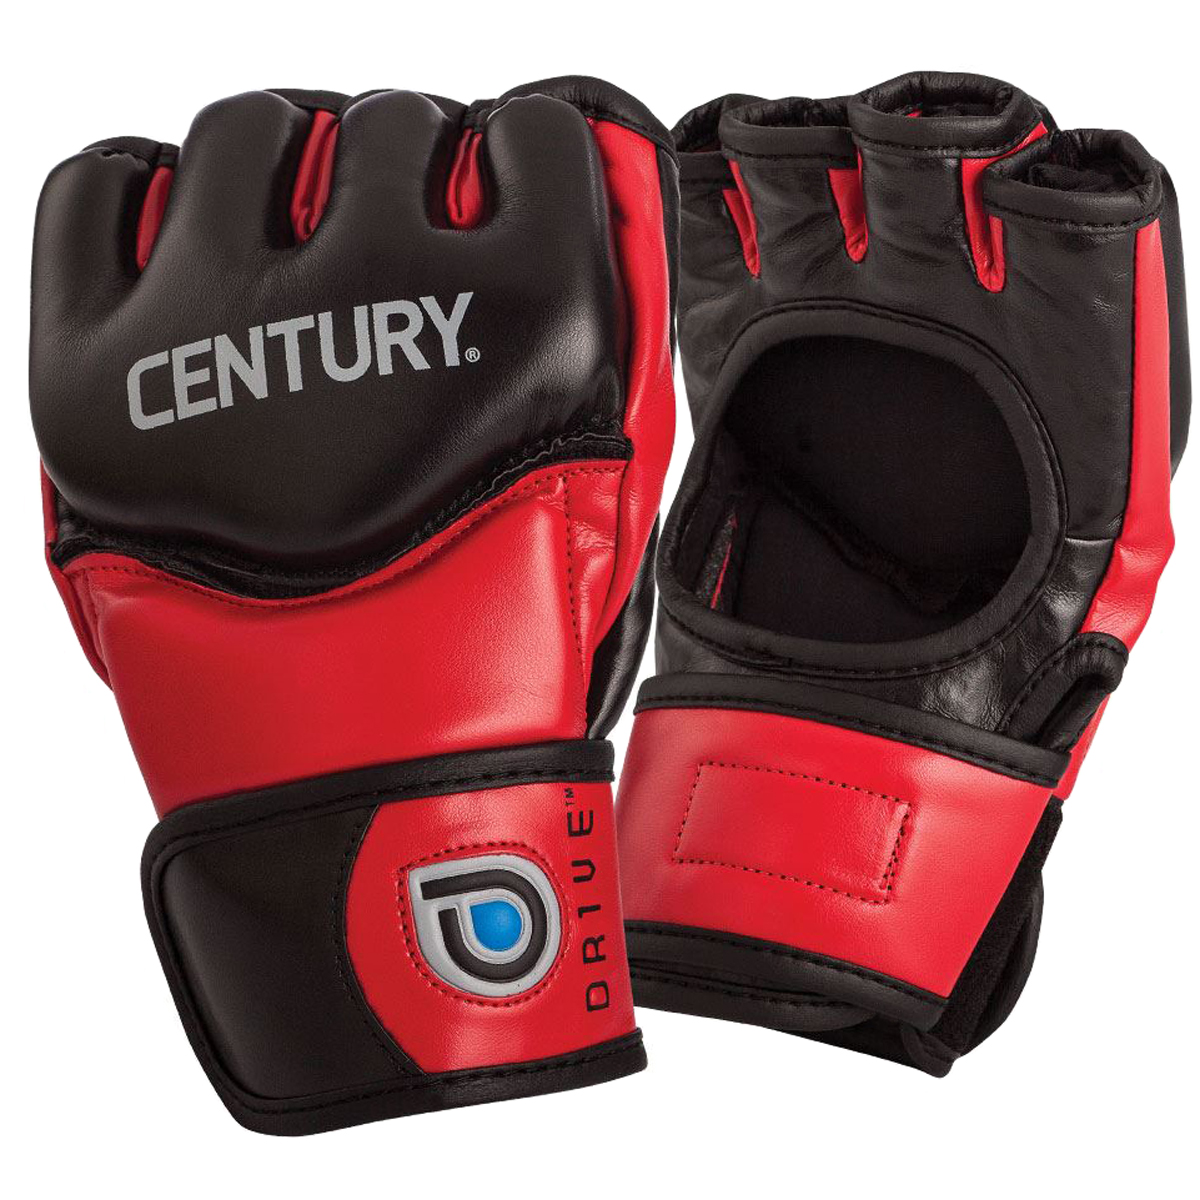 NEW $50 CENTURY Drive Fight Gloves MMA Karate Grappling Sparring Adult Men/'s